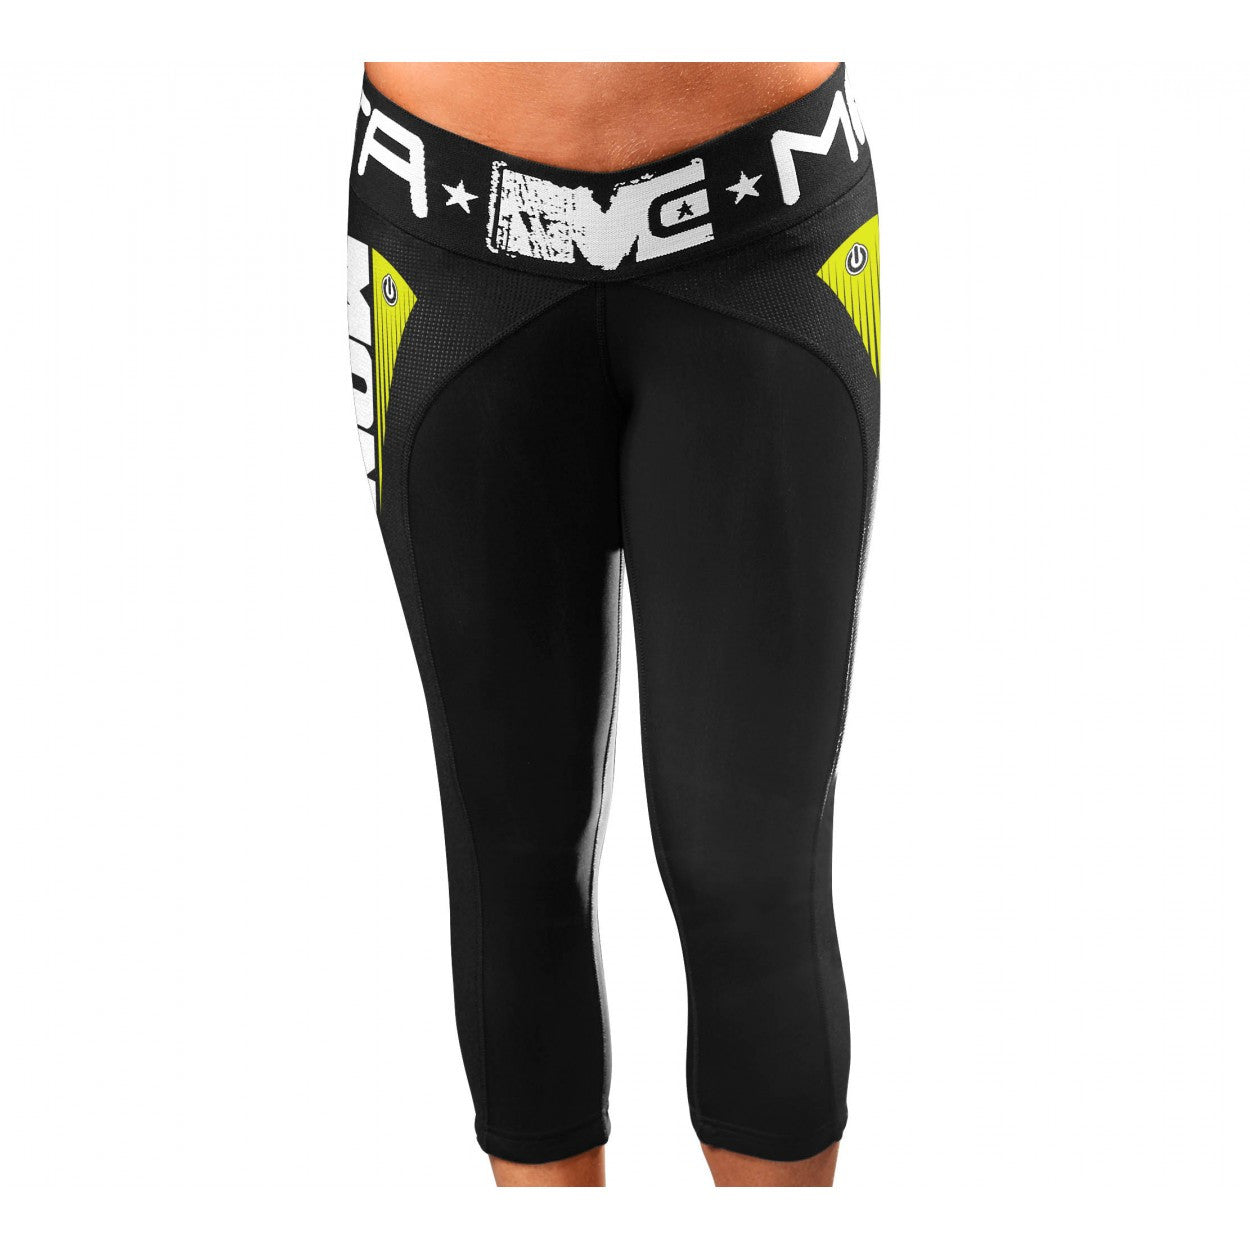 LADIES:  MONSTA MODE CAPRIS-197 - Monsta Clothing Australia